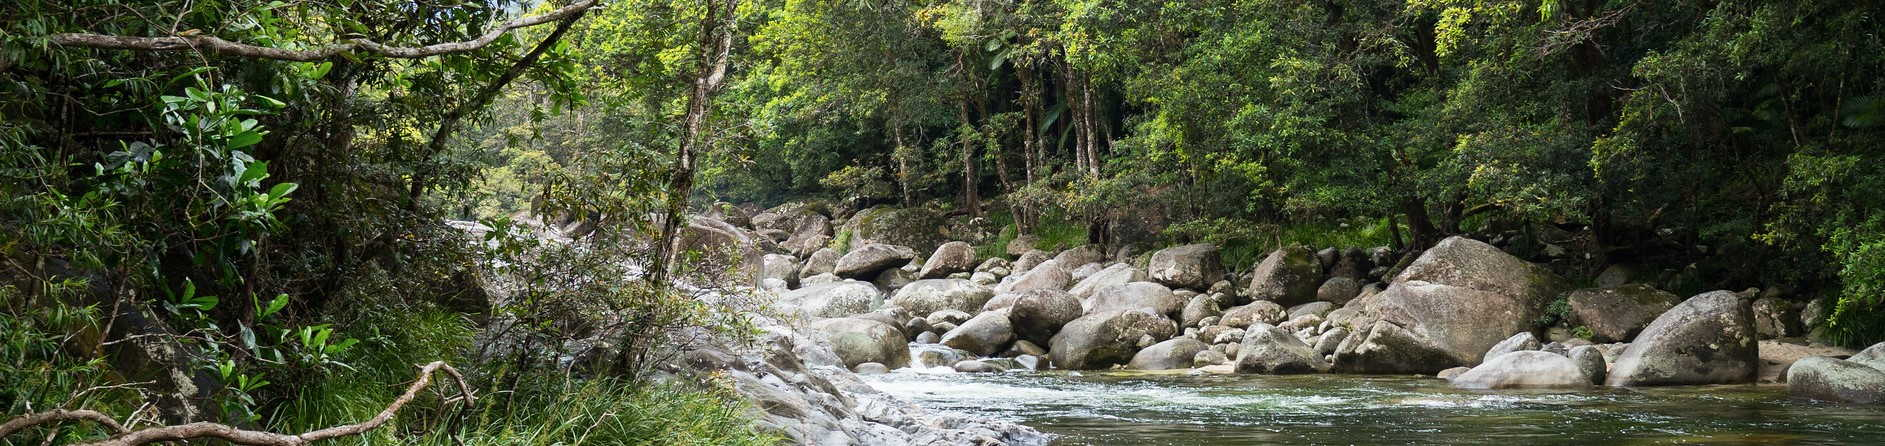 What state is the Daintree rainforest in?